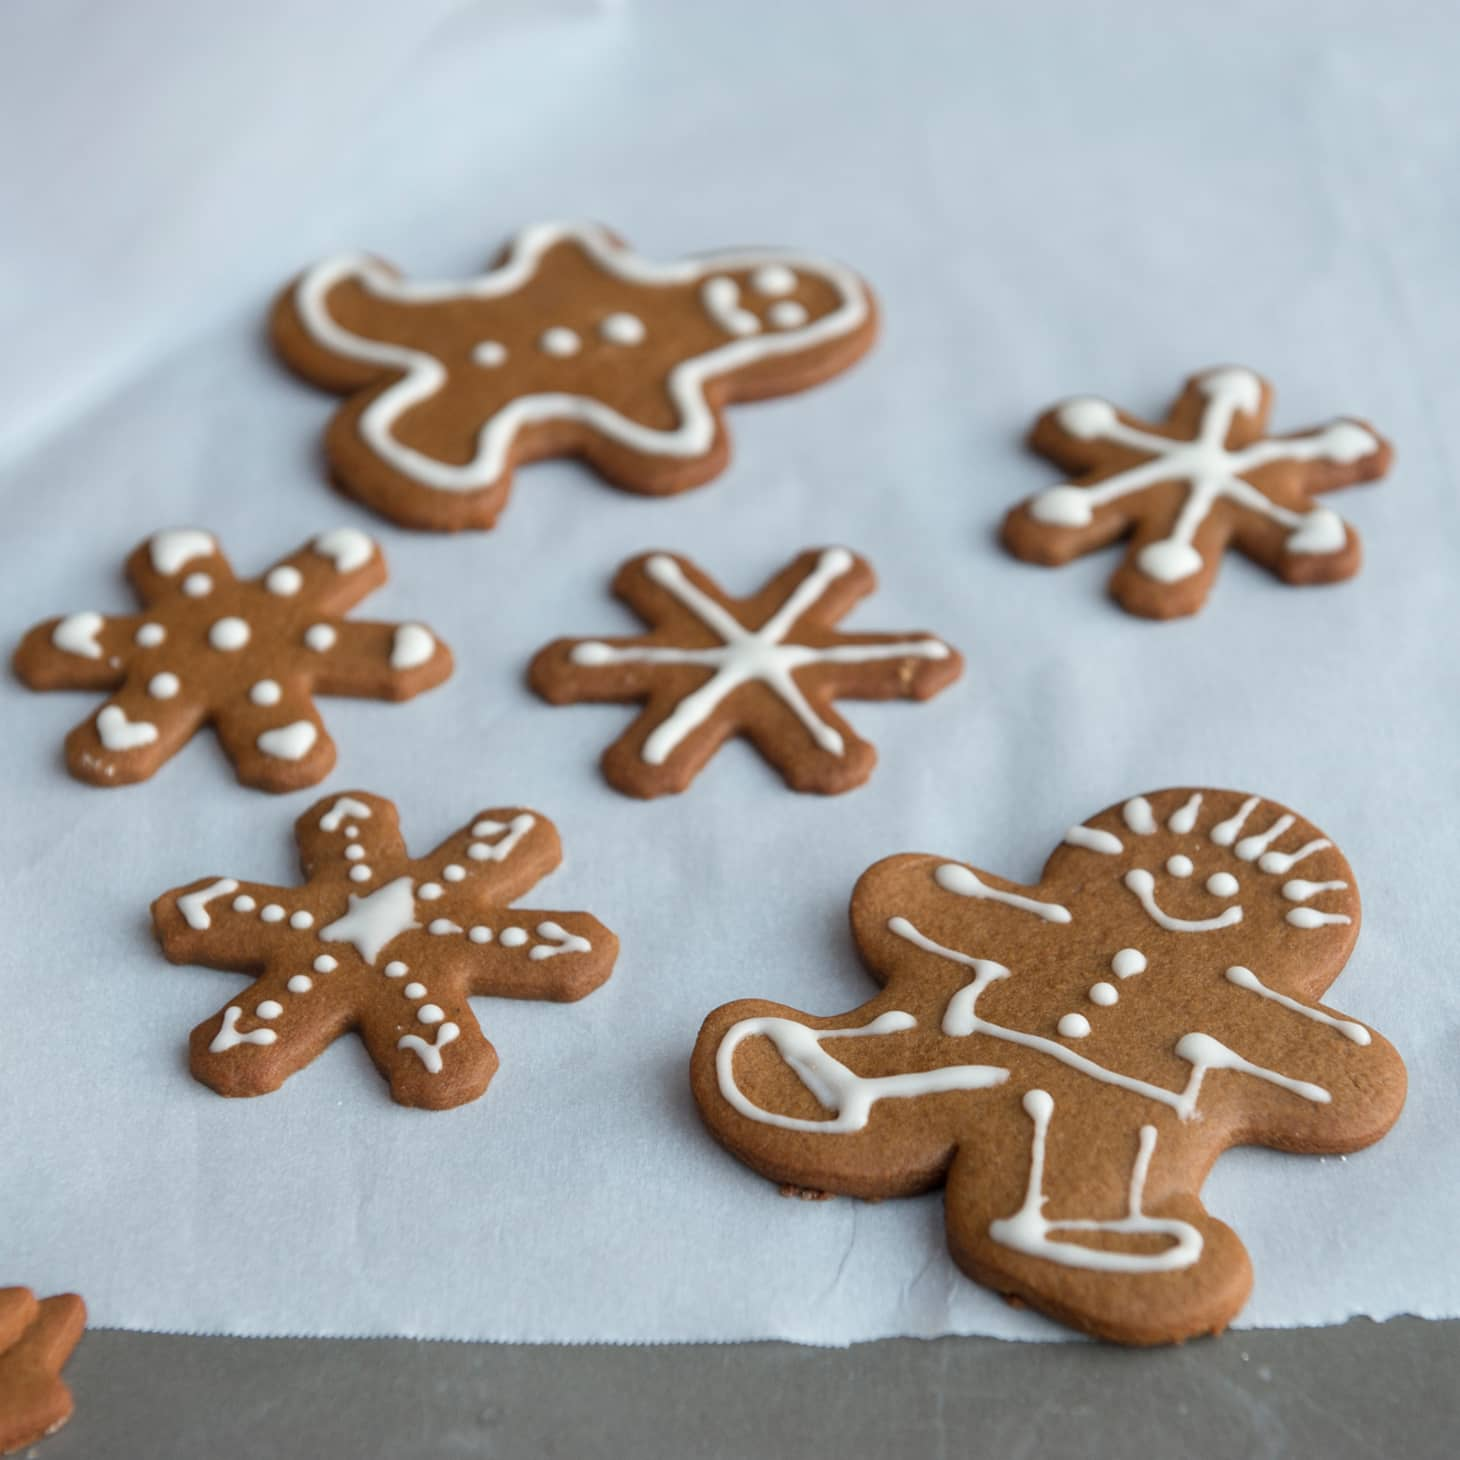 Classic Gingerbread Cut Out Cookies